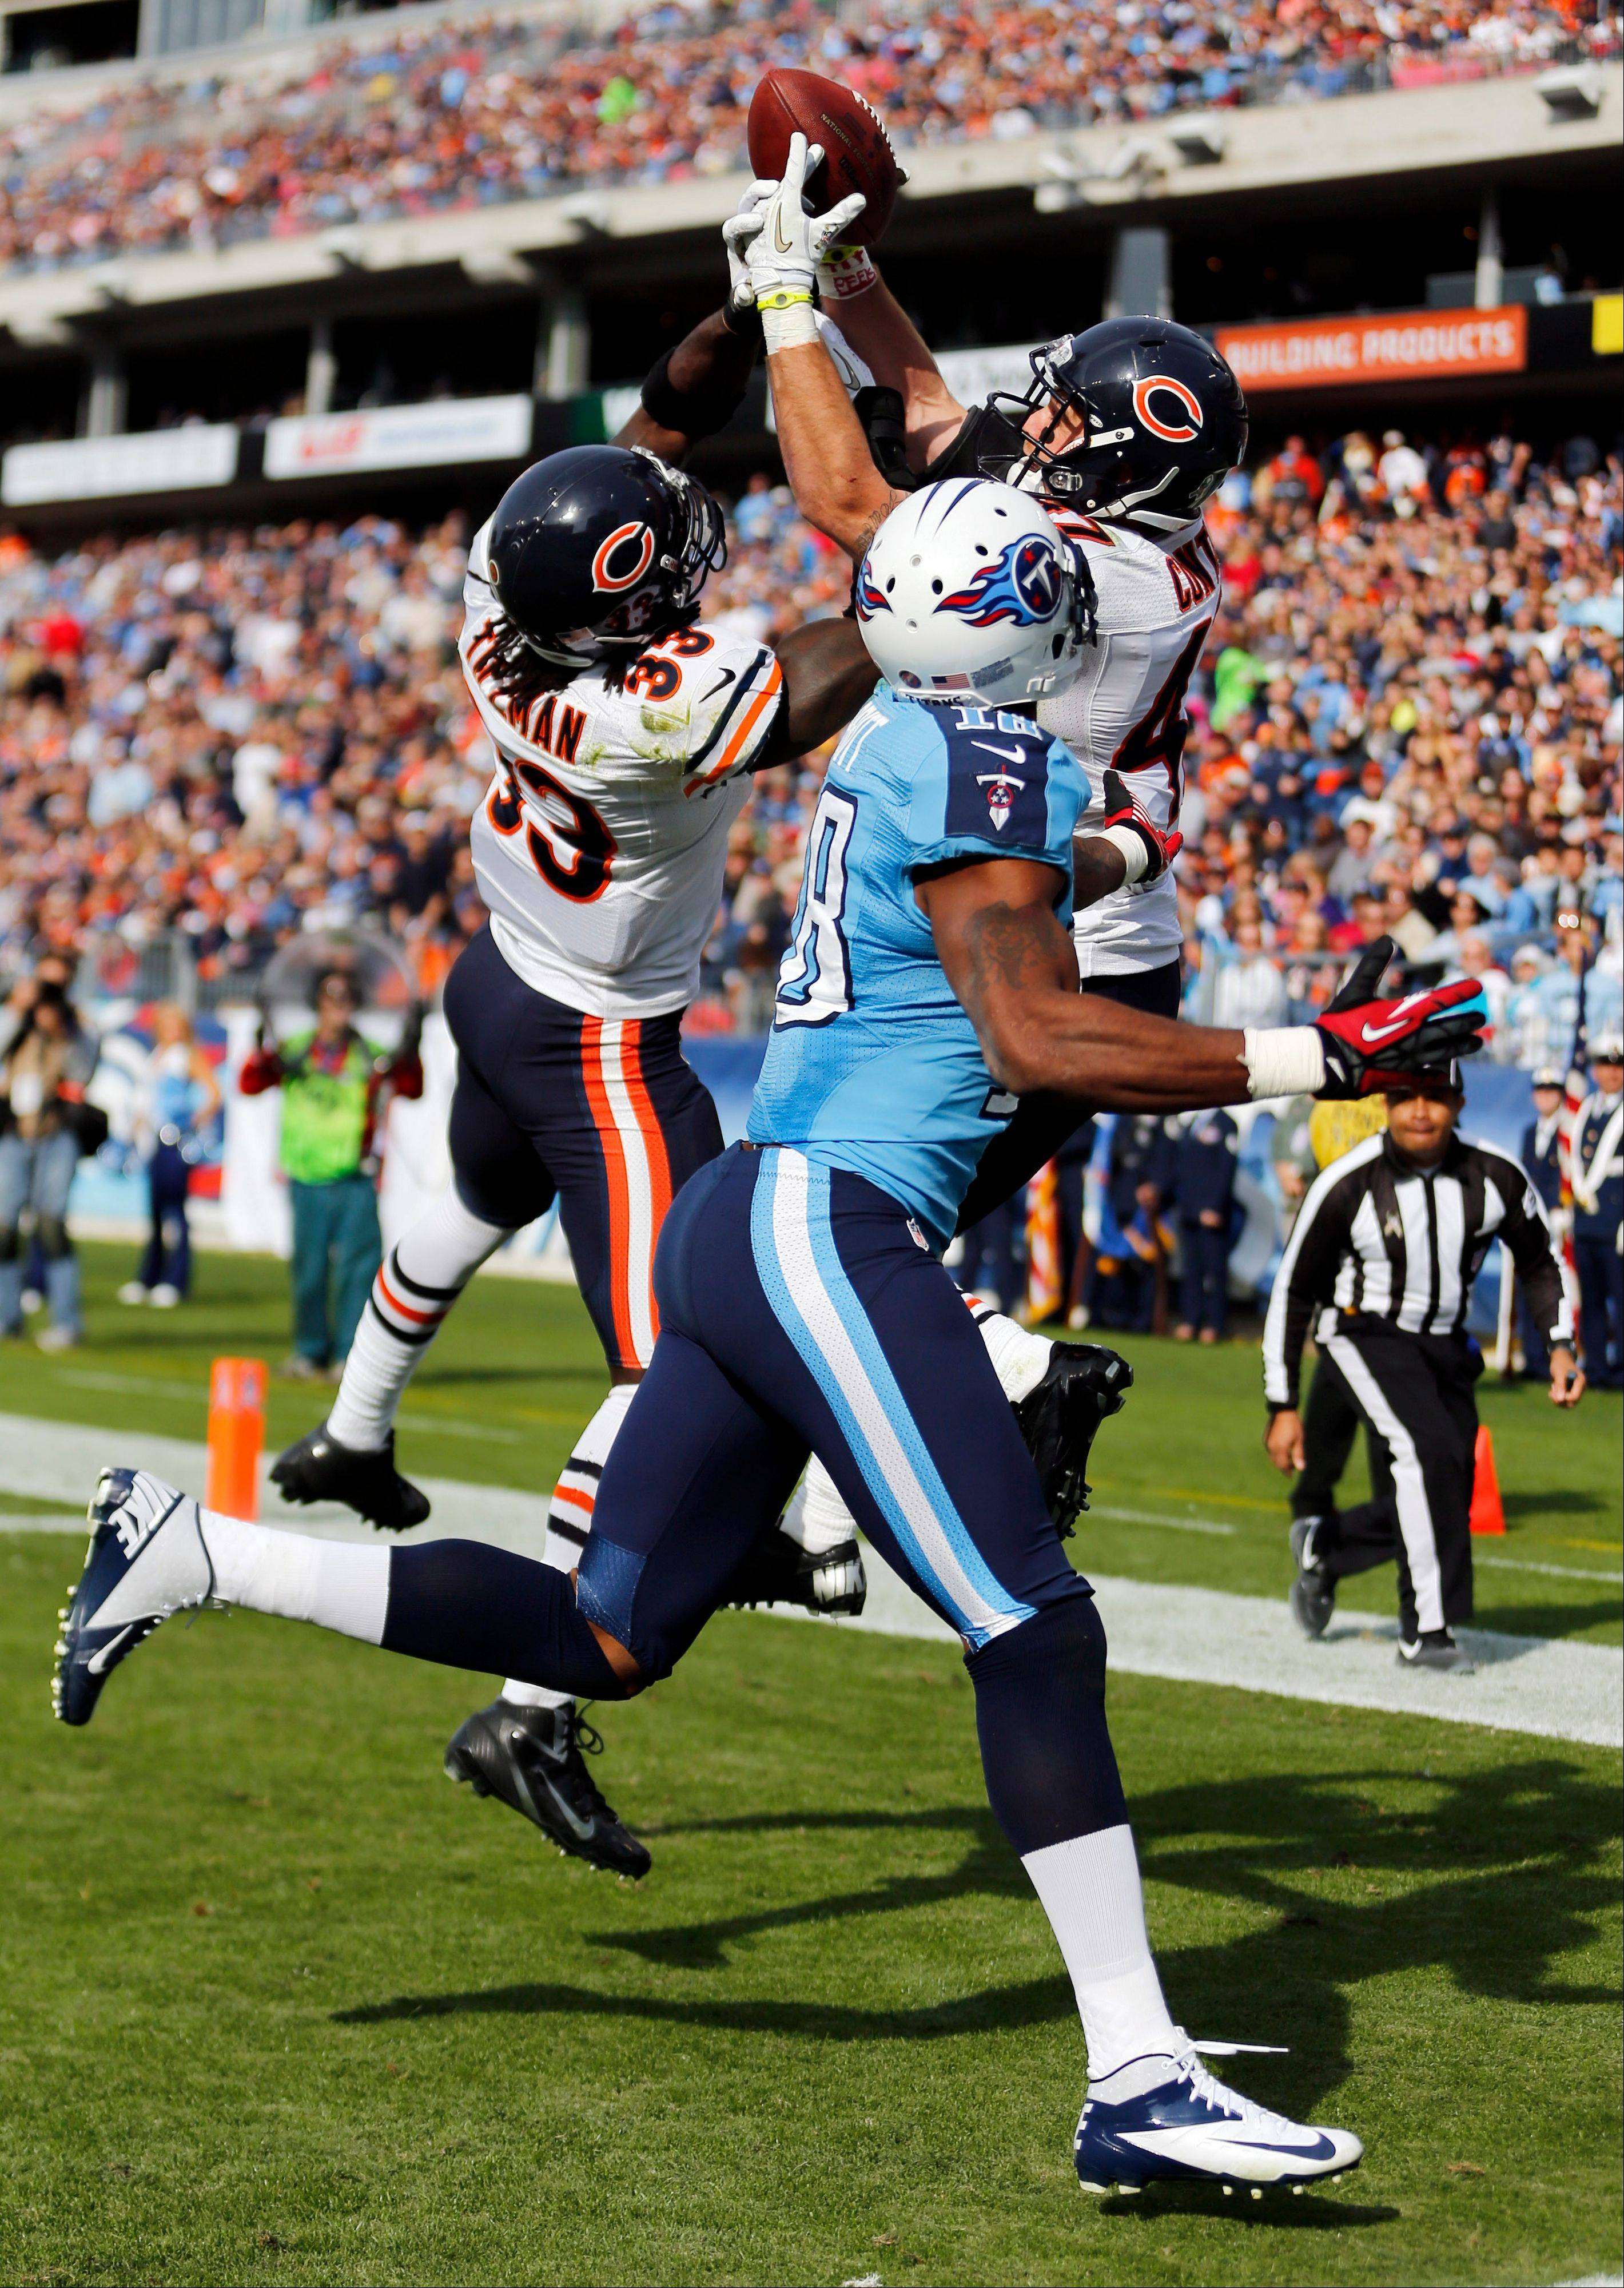 Charles Tillman, left, and Chris Conte break up a pass in the end zone intended for Titans wide receiver Kenny Britt in the second quarter Sunday.